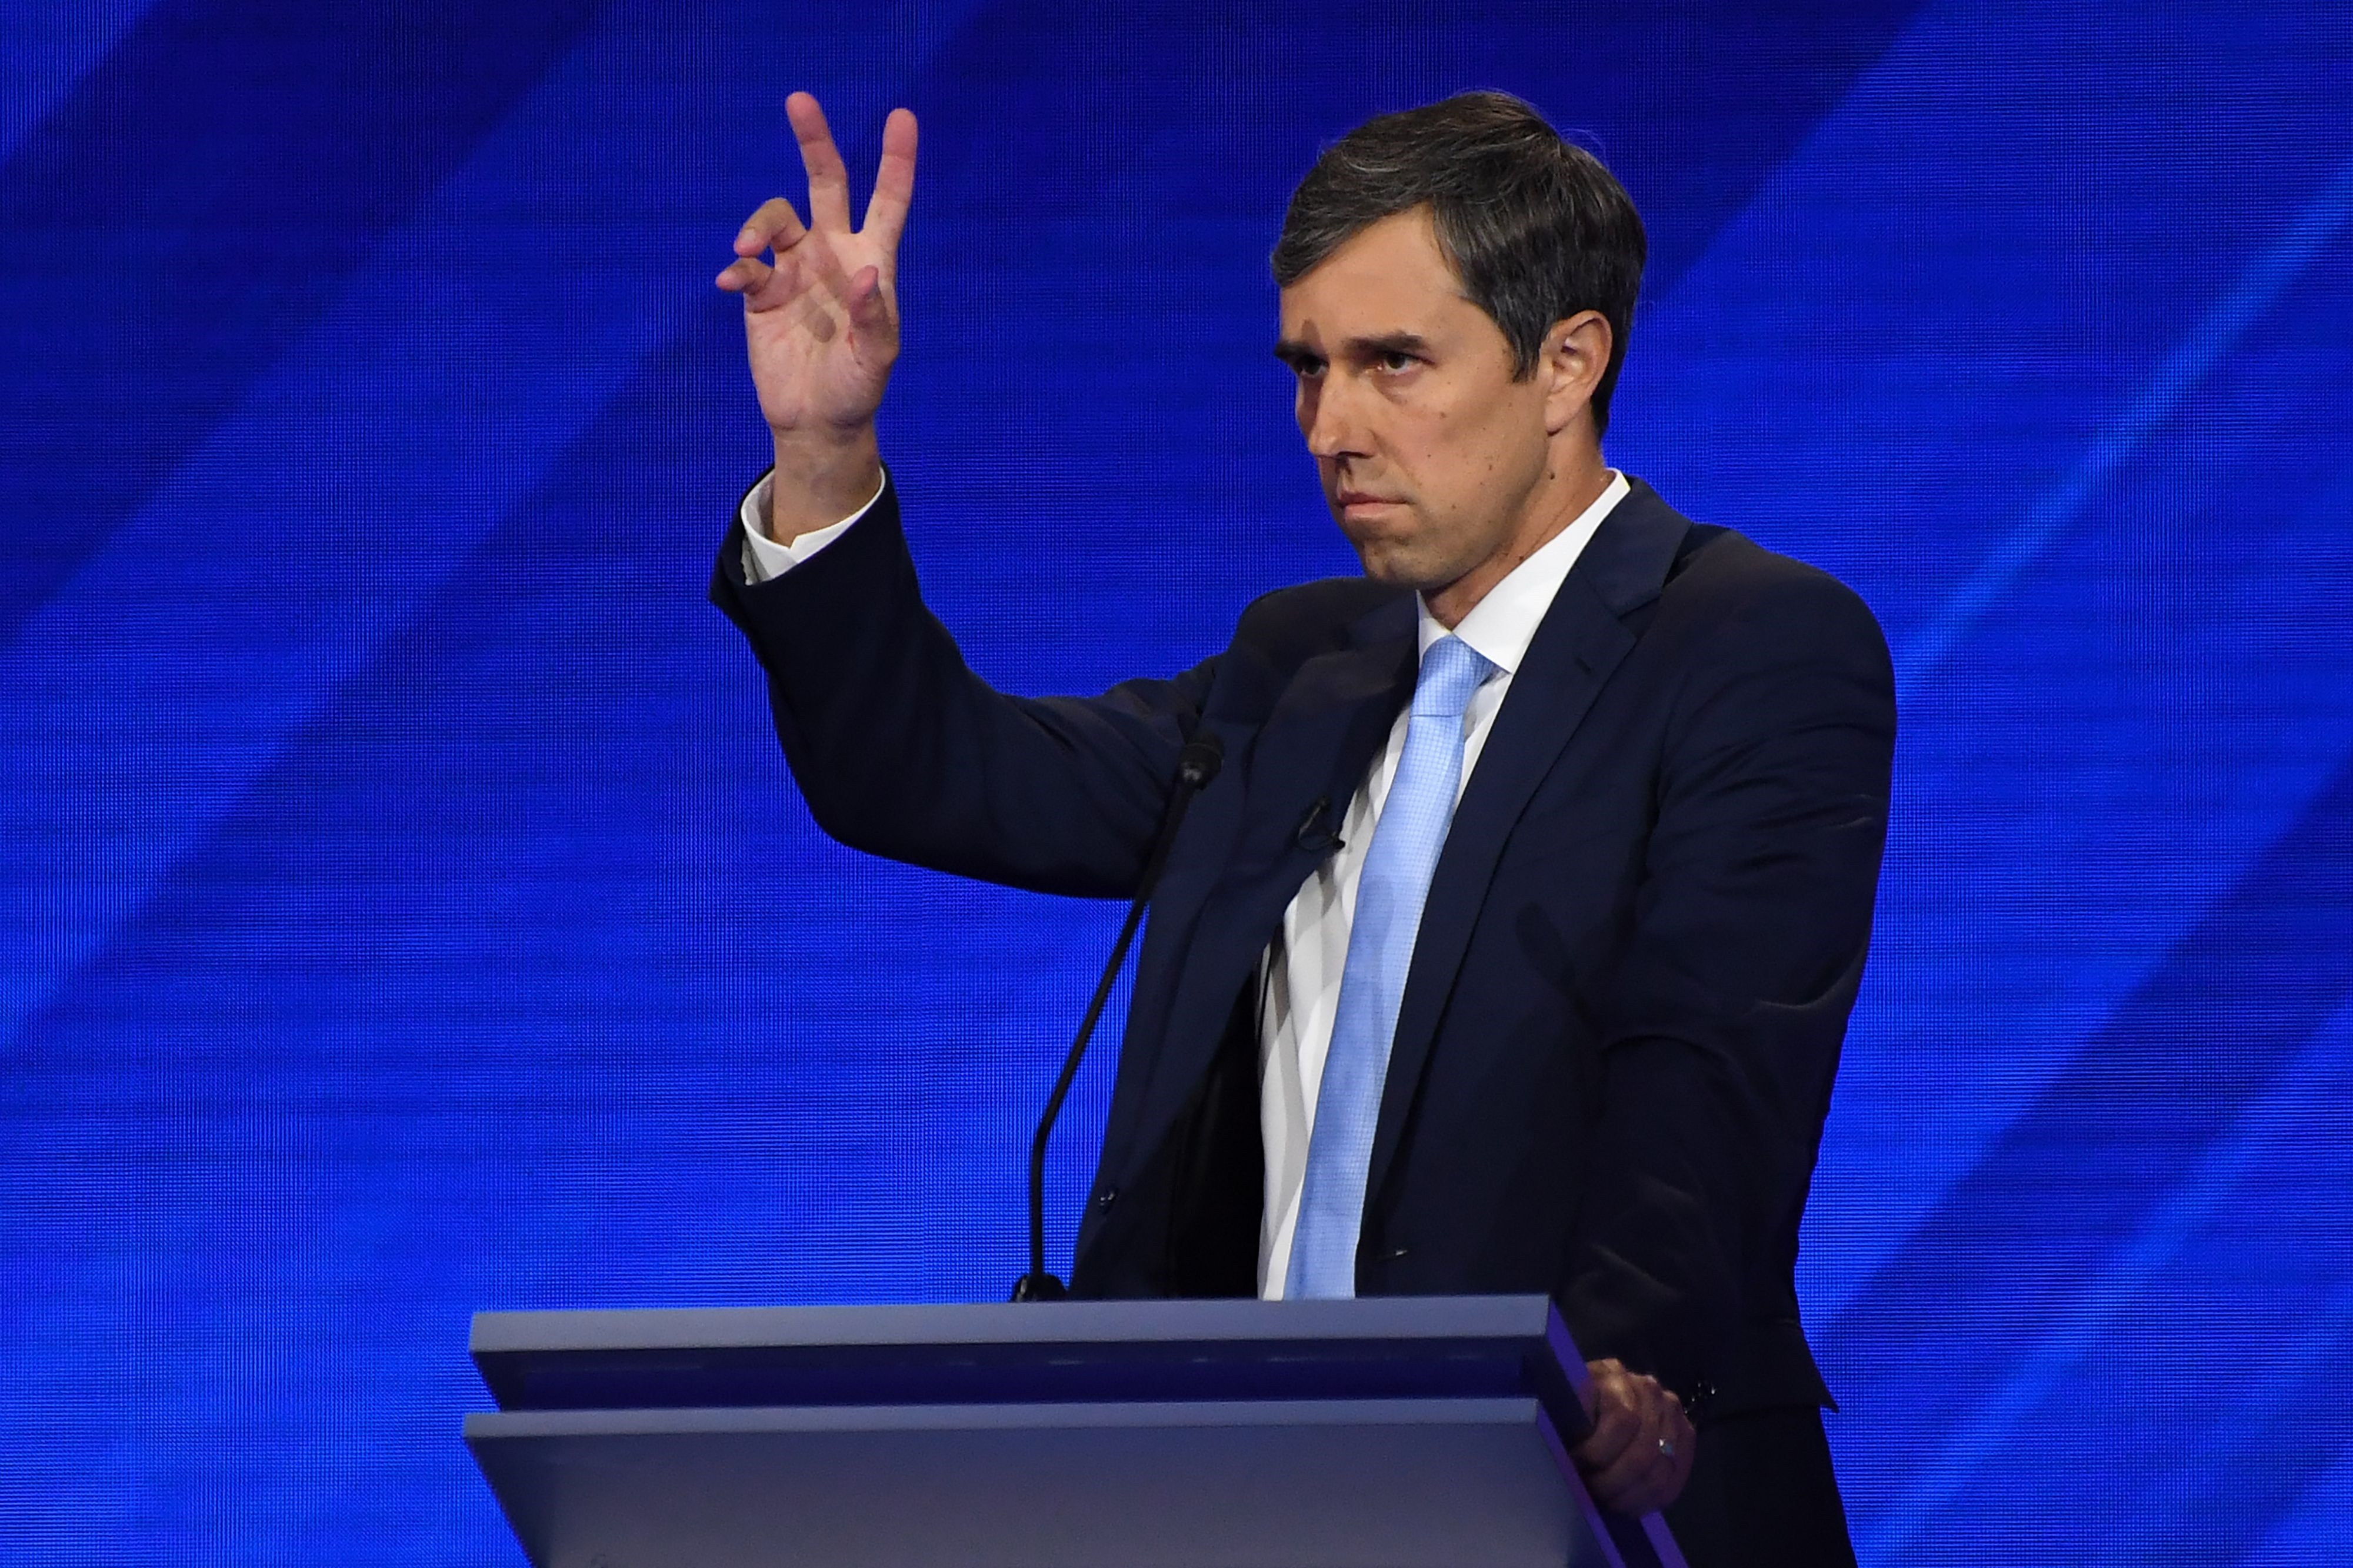 'SOLD OUT': Arizona Gun Store Offers 'Beto Specials' on AR15s and AK47s